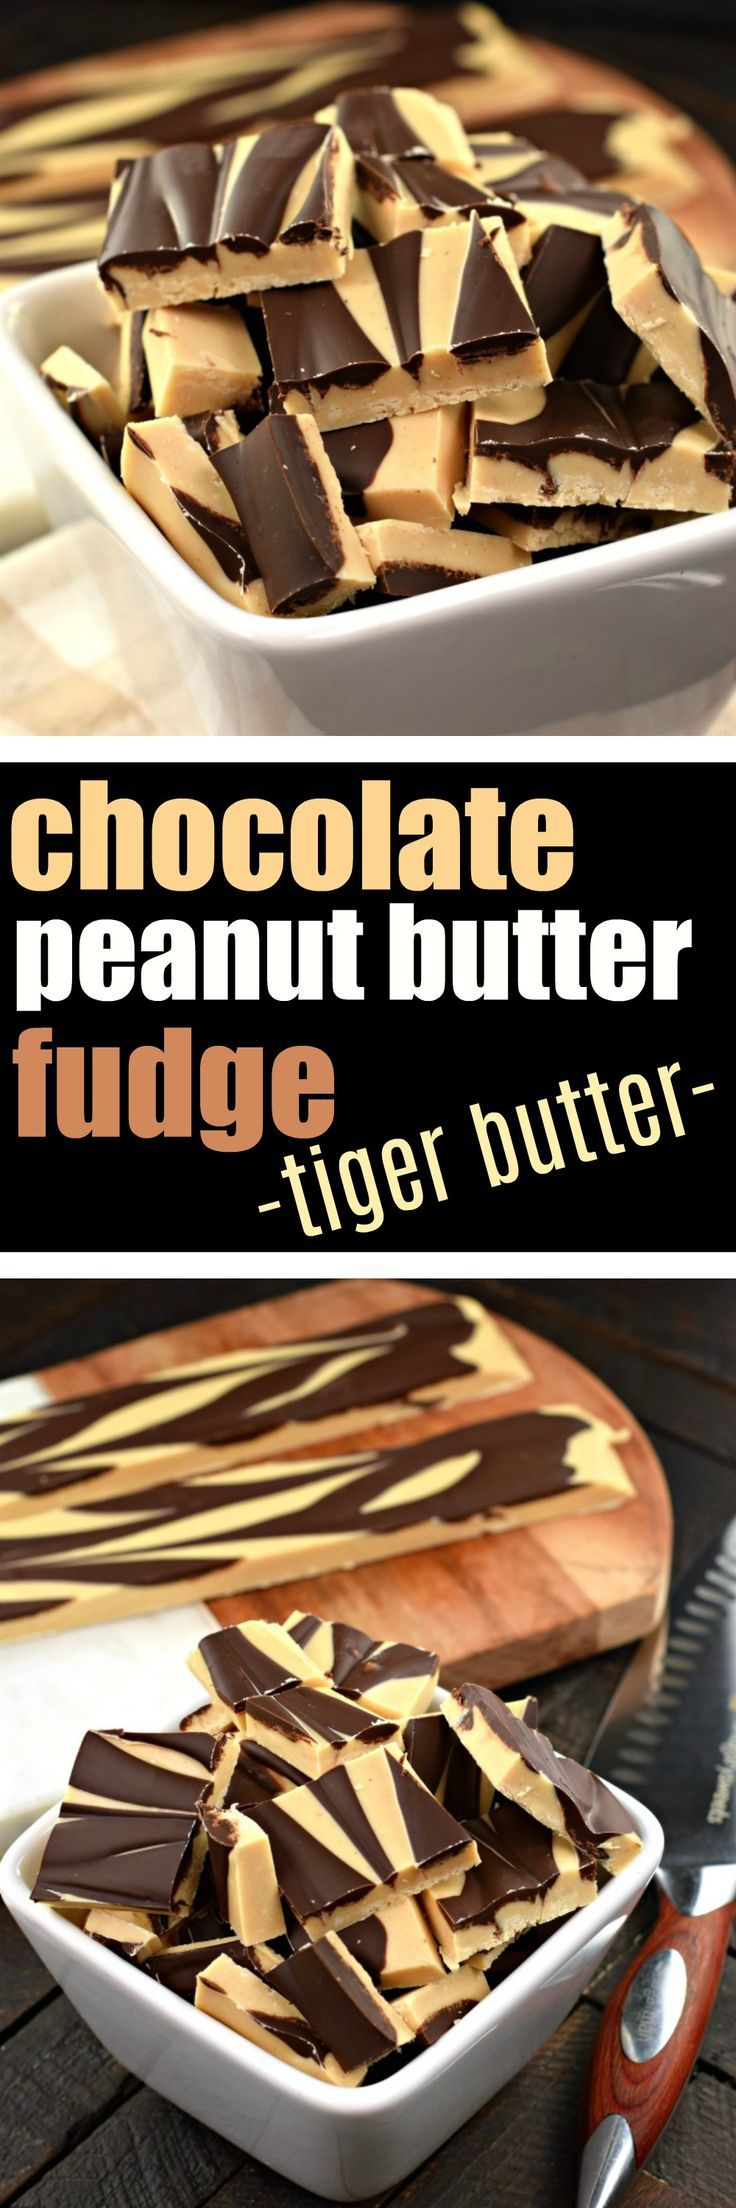 Tiger Butter Fudge#swirled#chocolate#peanutbutter#candy#confections